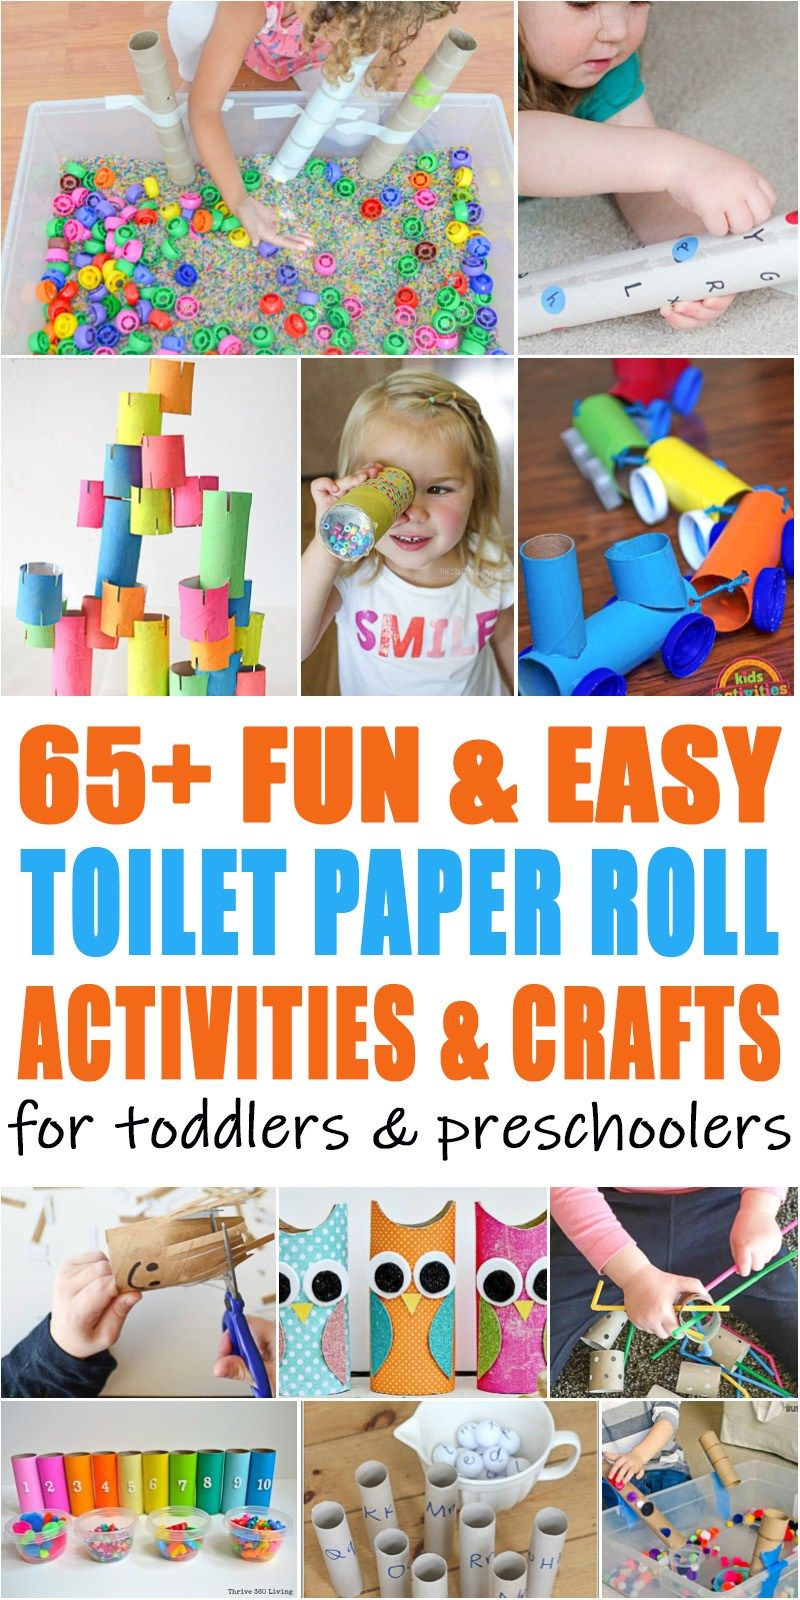 65 Easy Toilet Paper Roll Activities Paper Towel Roll Crafts